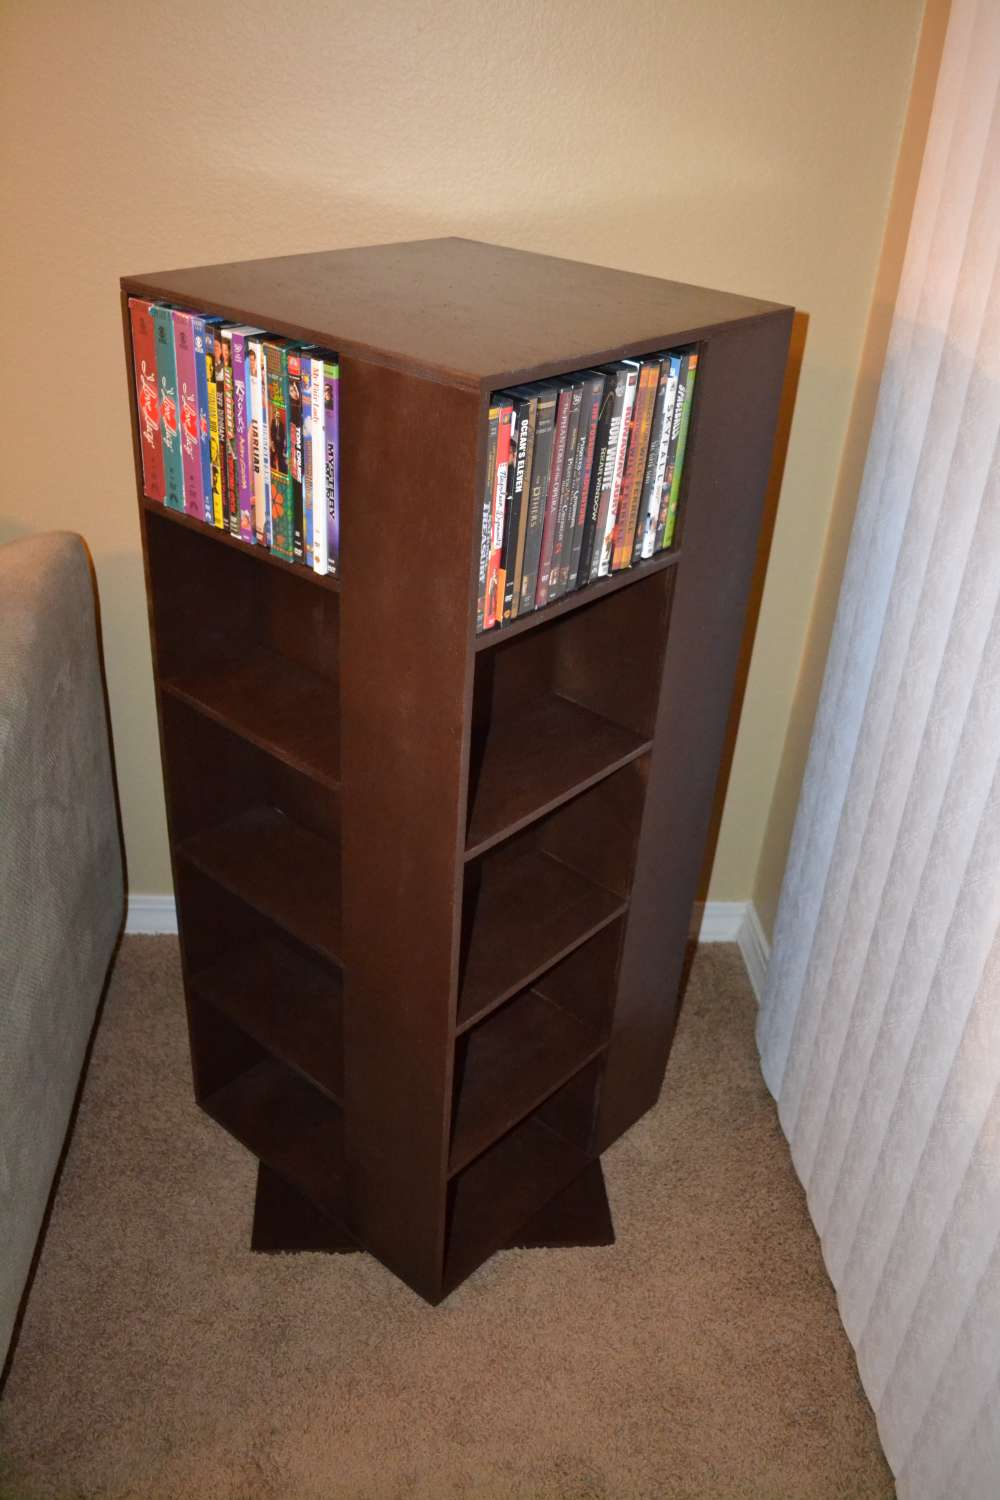 Ana White  My First Project Spinning DVD Rack  DIY Projects